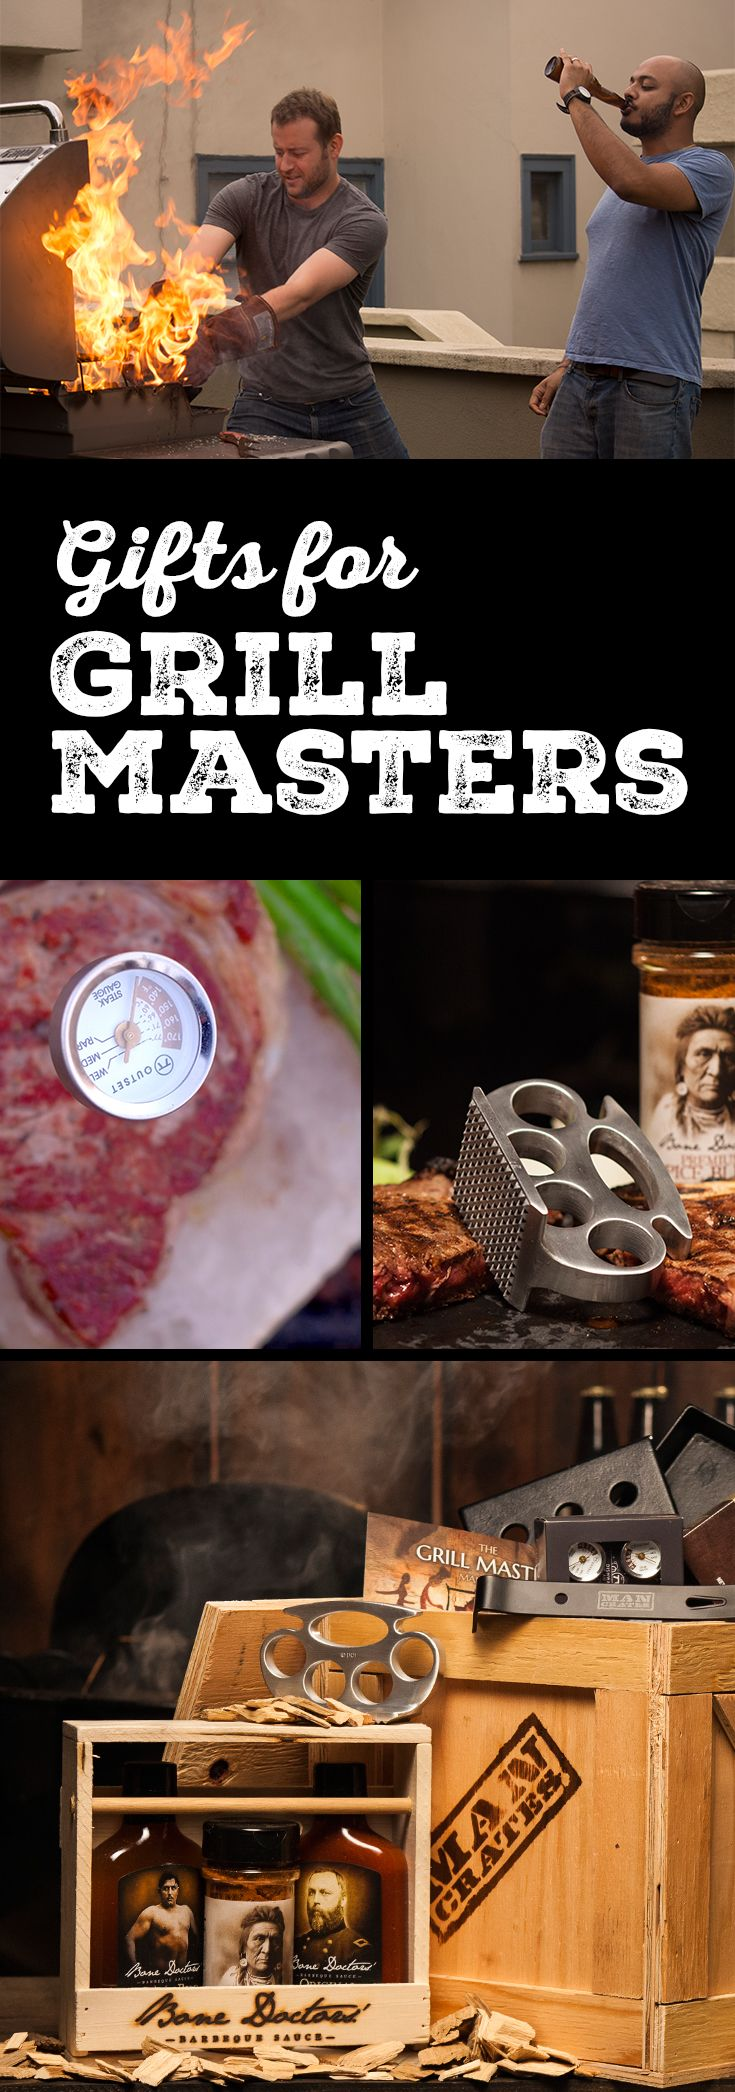 Man Crates has tirelessly studied the grill master in his natural habitat and designed awesome gifts he'll love. Full findings presented within.